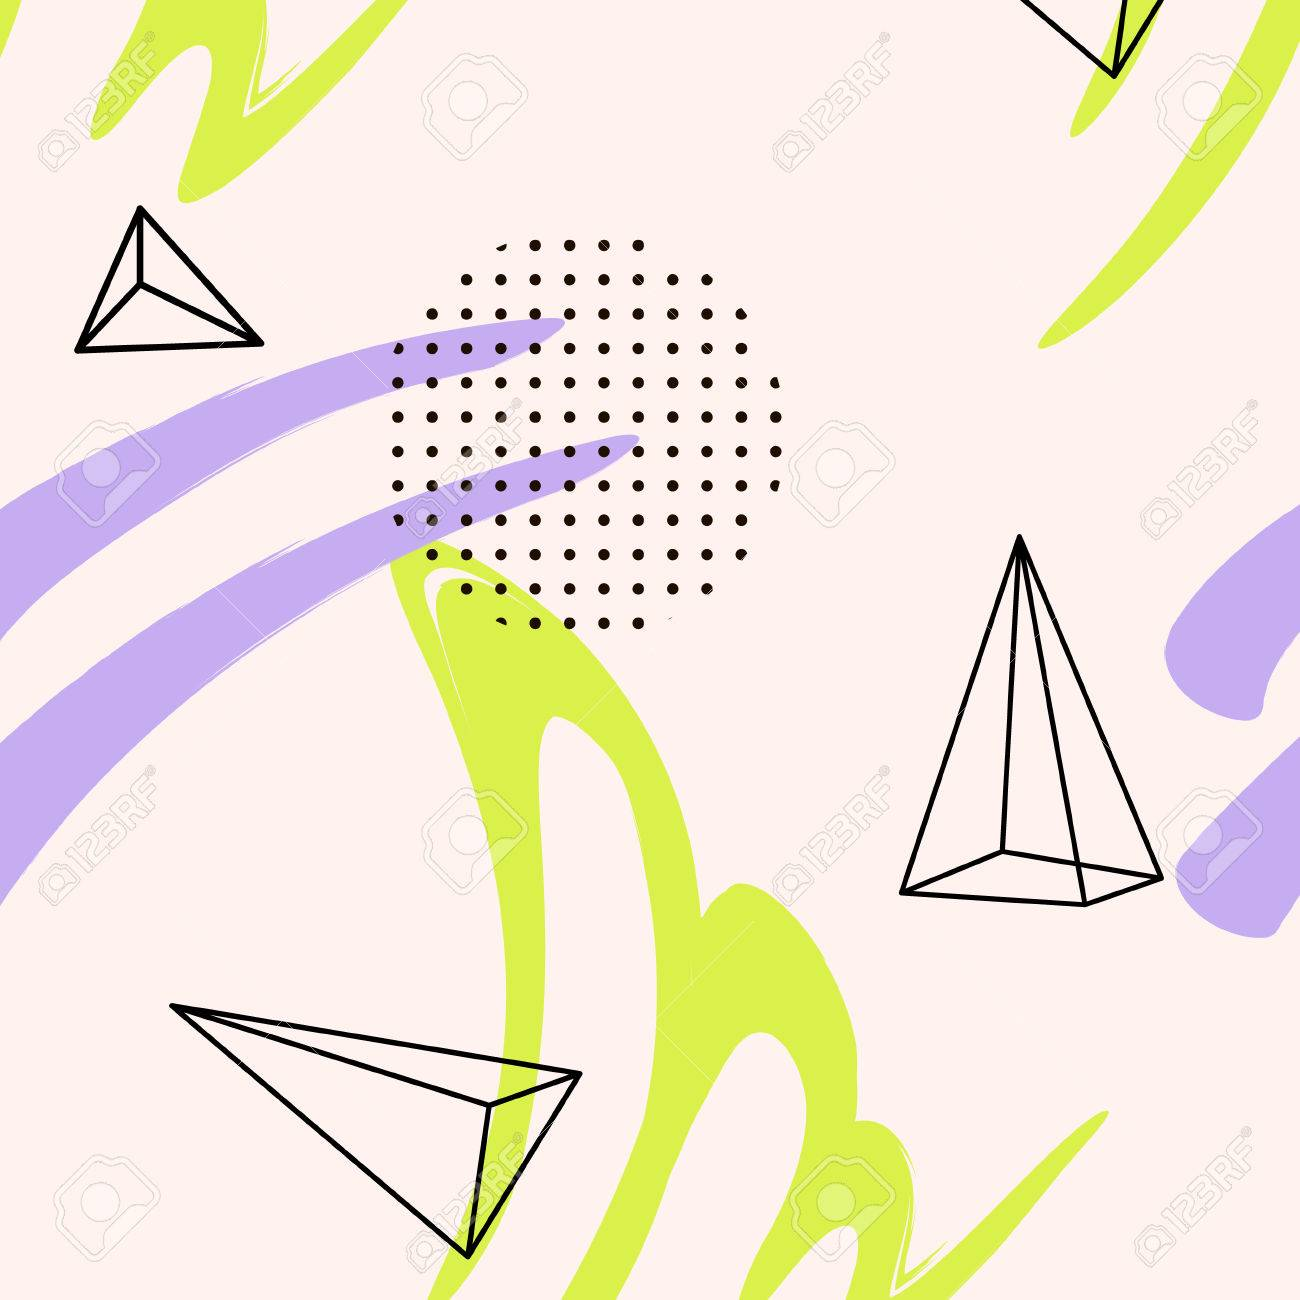 Hand Drawn Brush Textures In Violet Blue Abstract Repeating Boho Background Simple Music